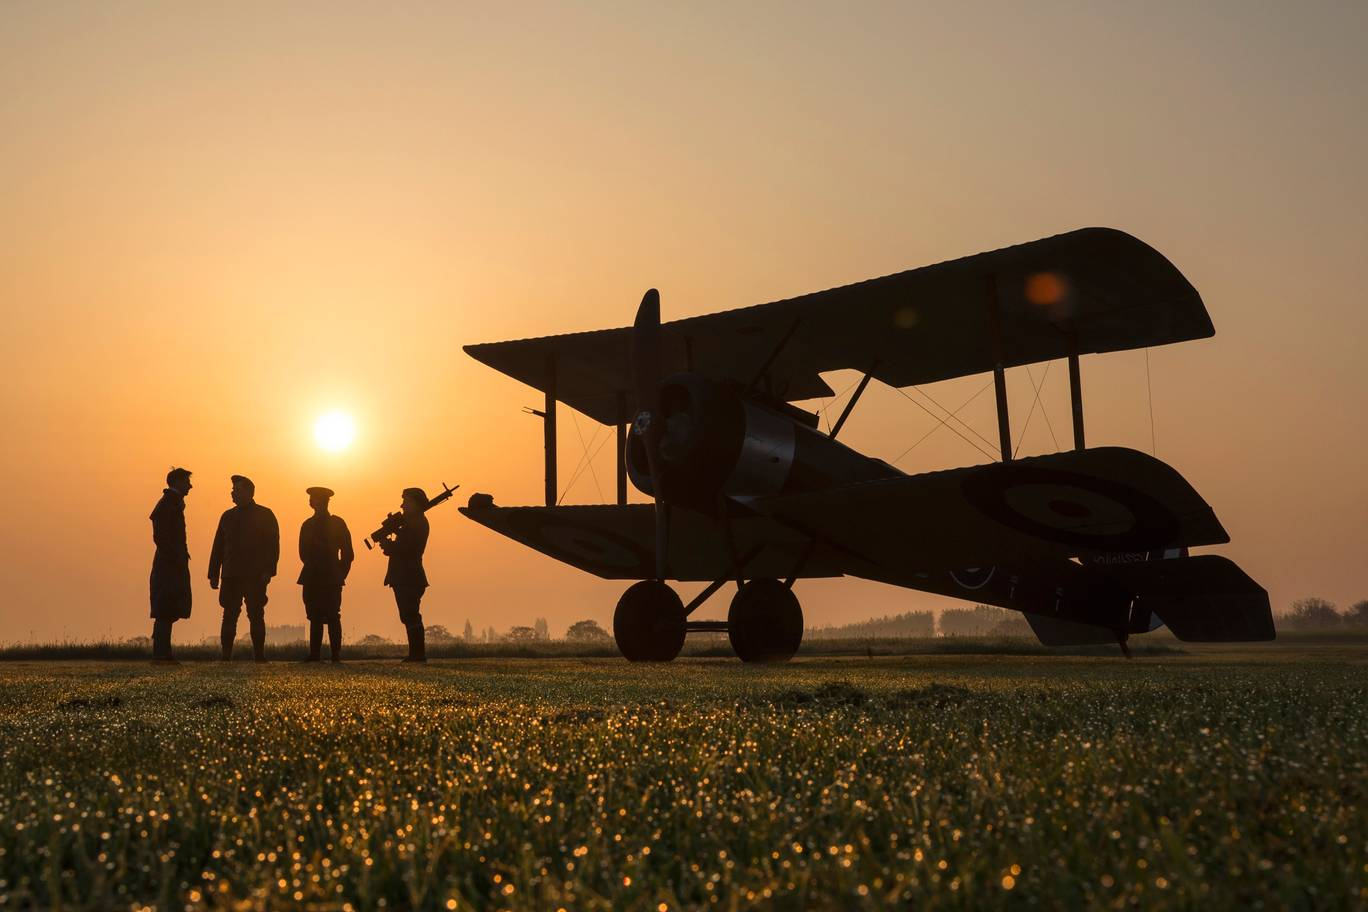 RAF Photographer of the Year: 2019 Photographic Competition